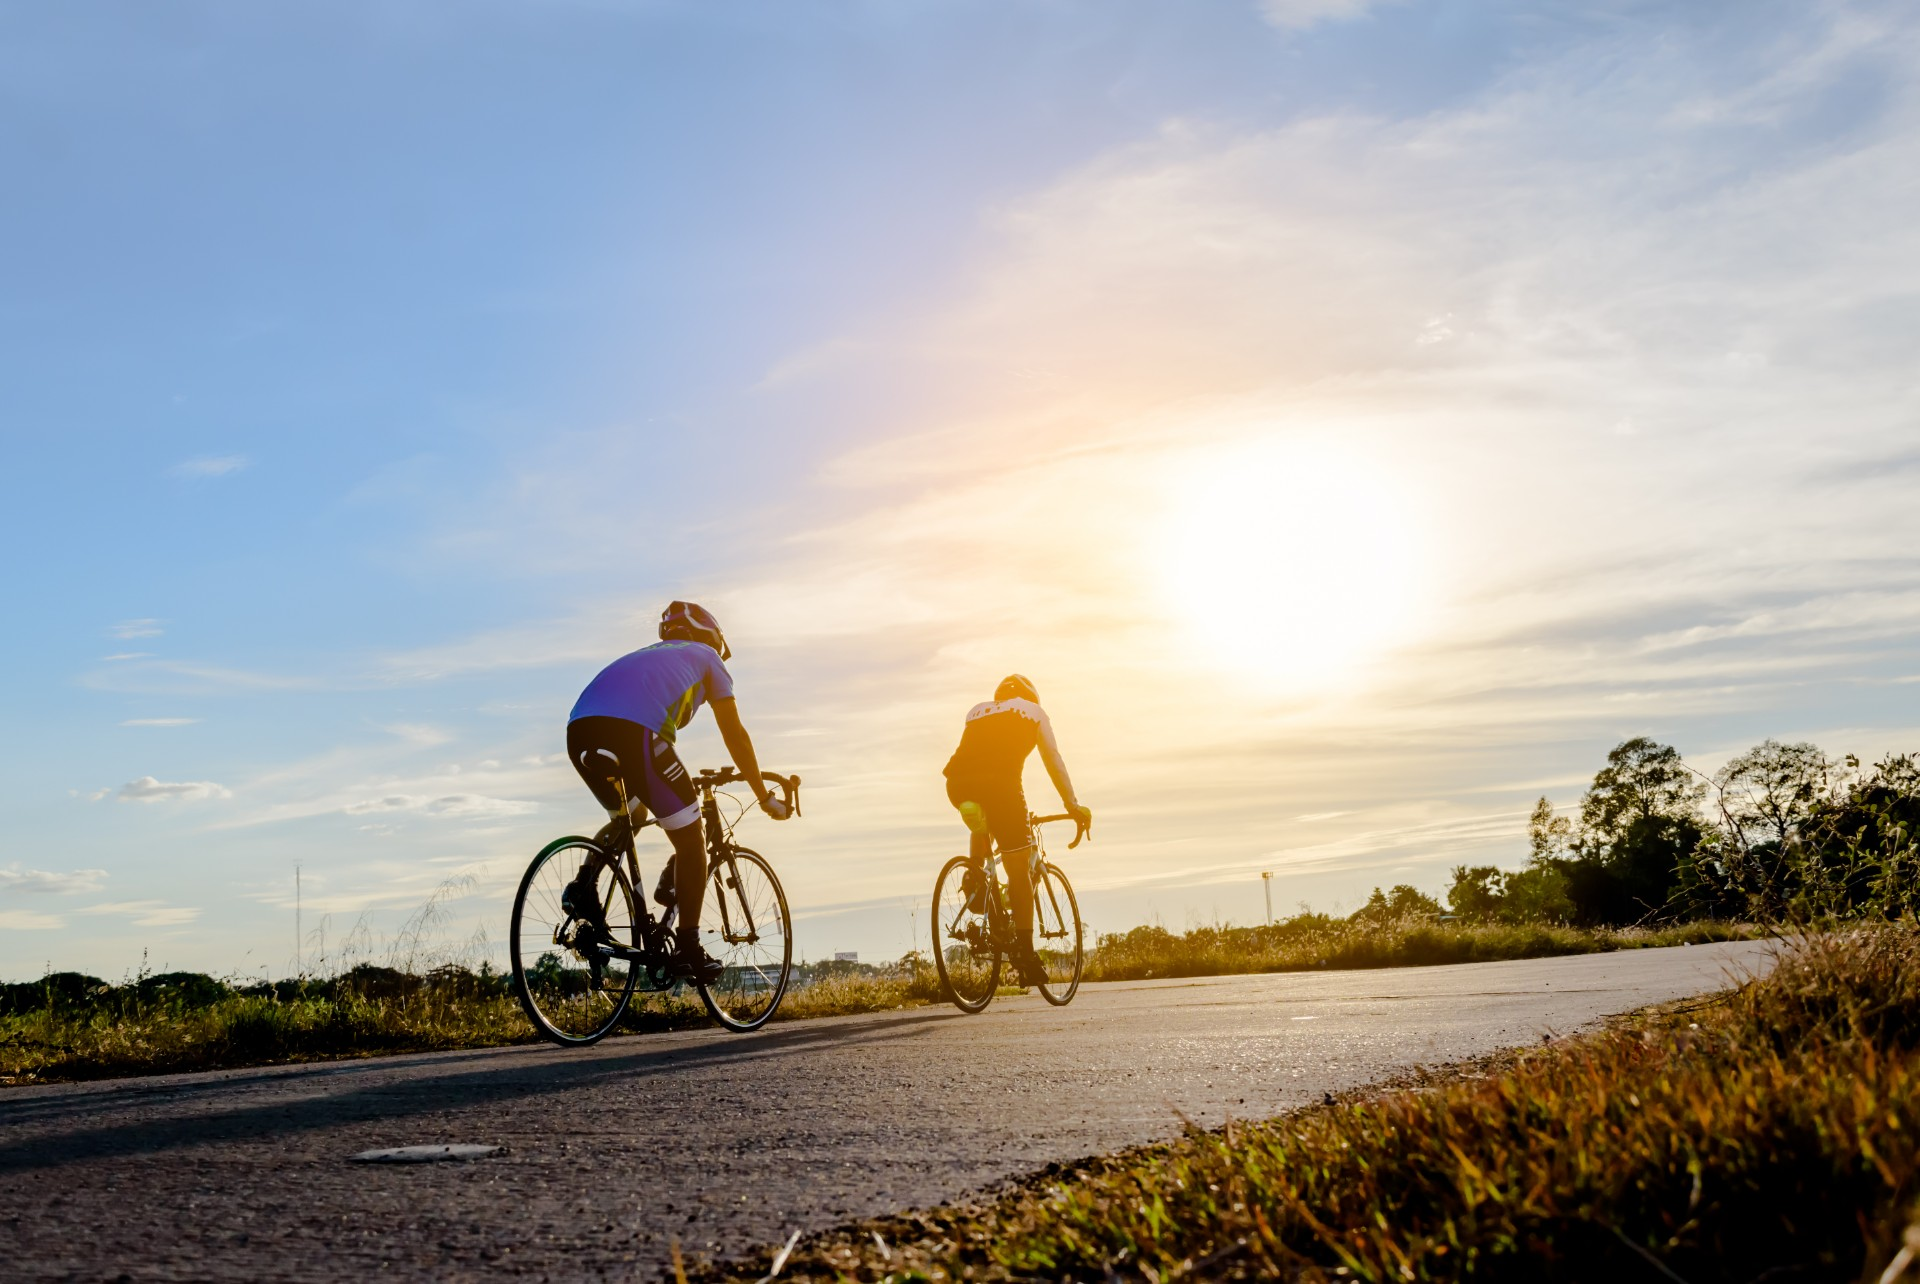 Two men ride on bike on the road